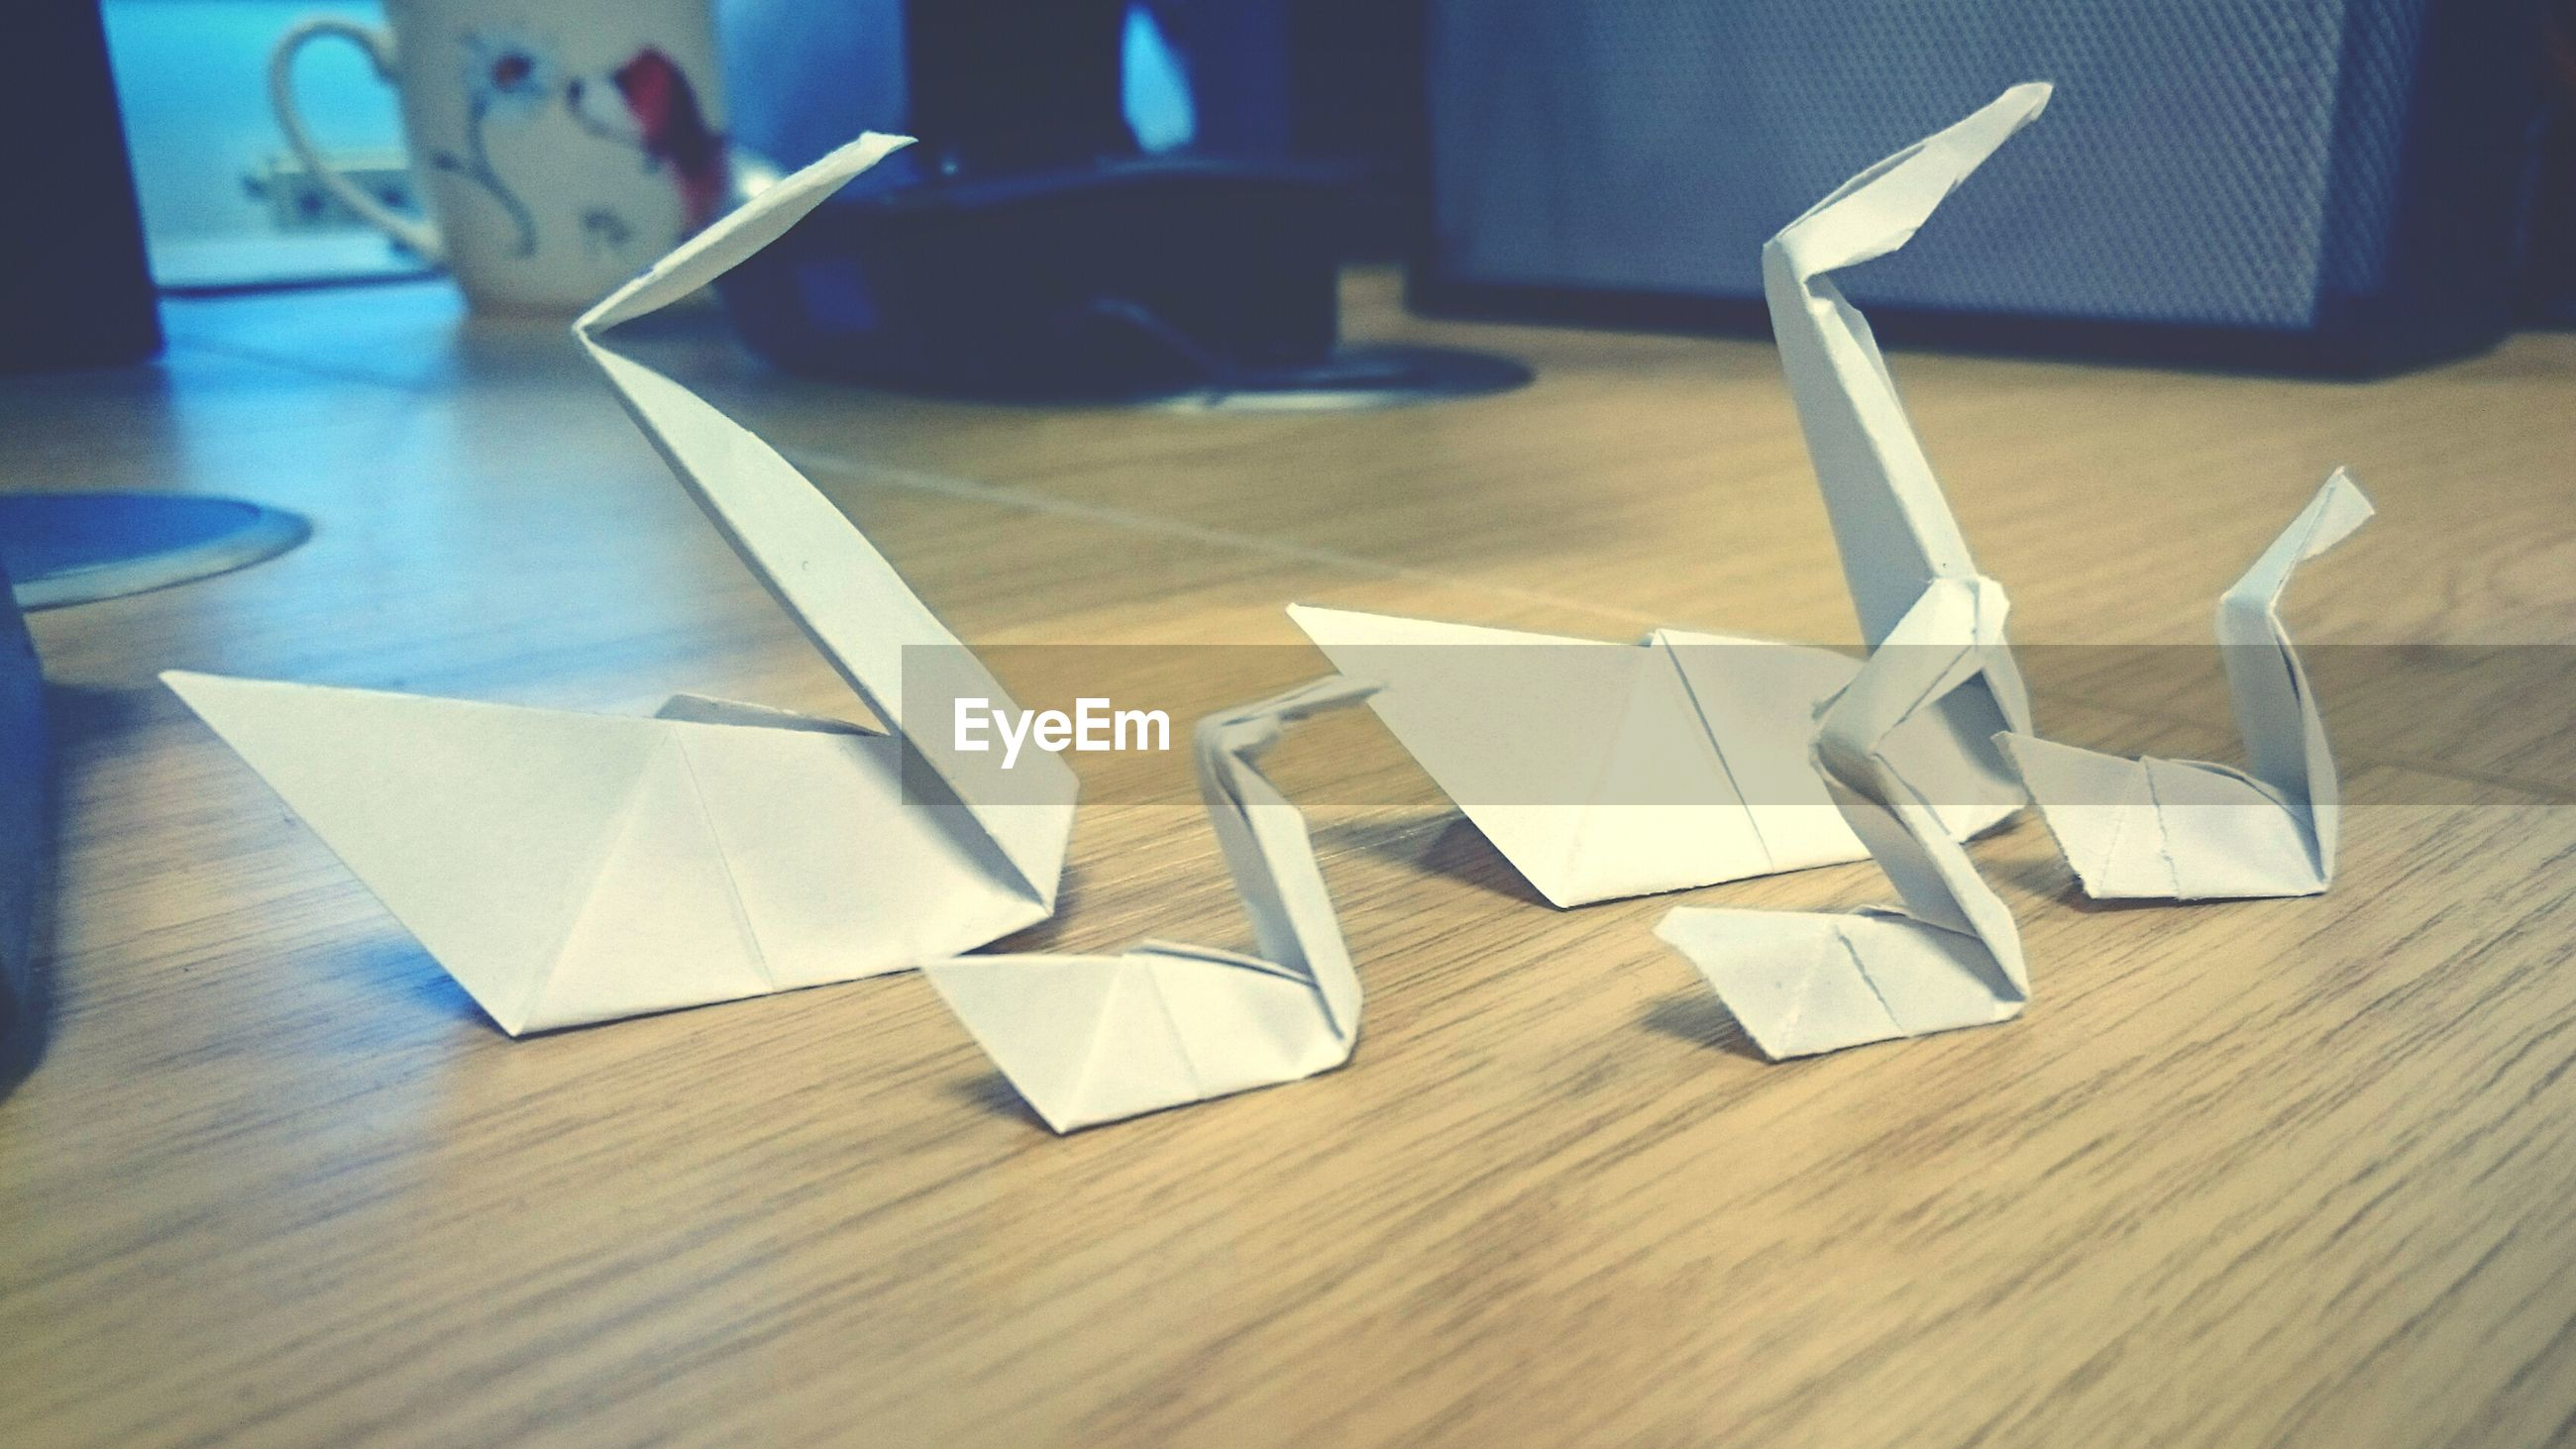 Side view of paper birds on table